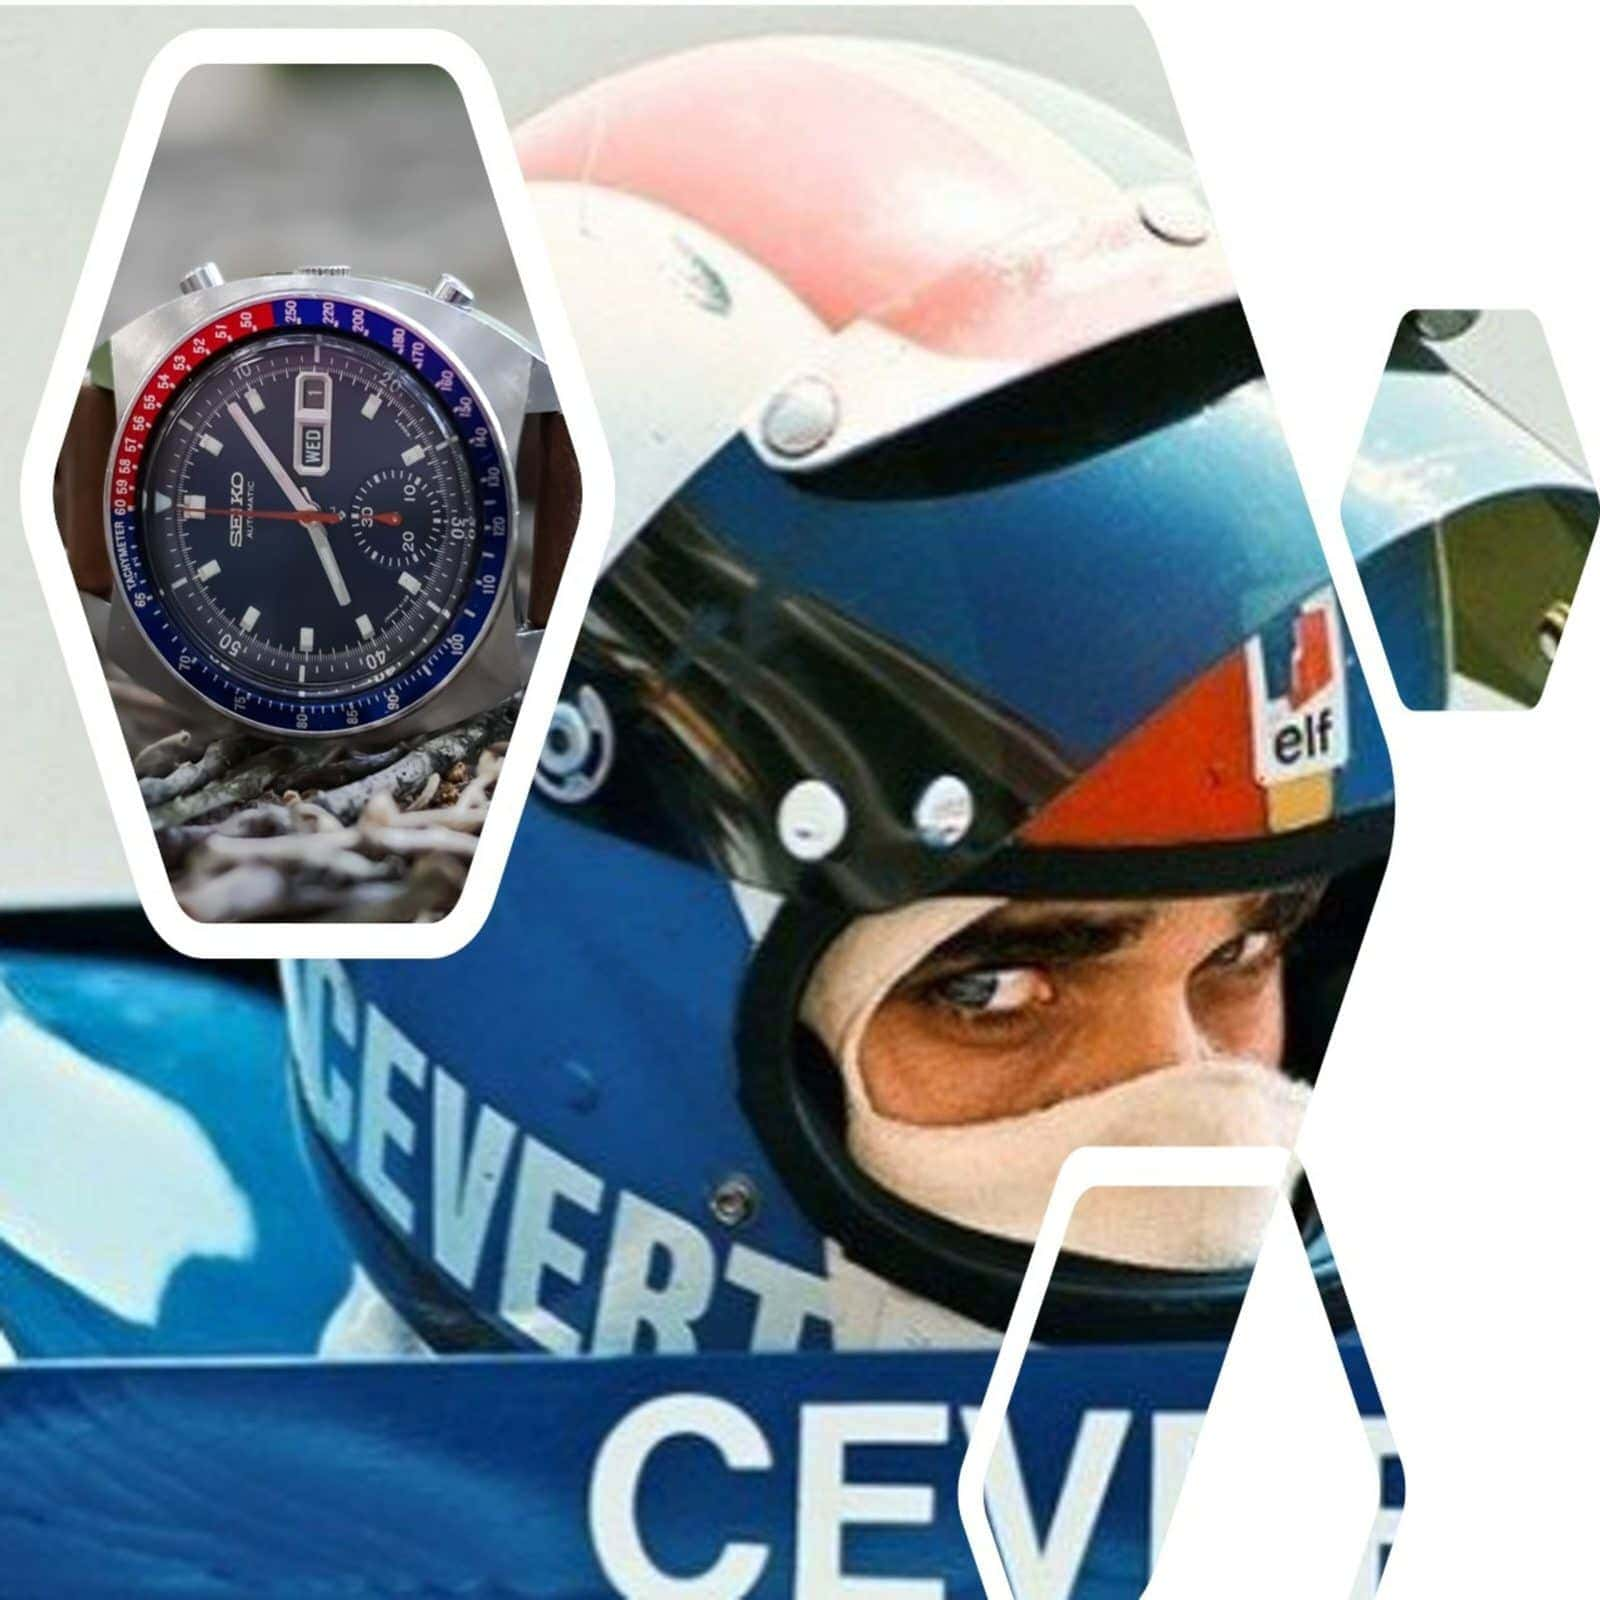 Racing Watches: SEIKO & François Cevert